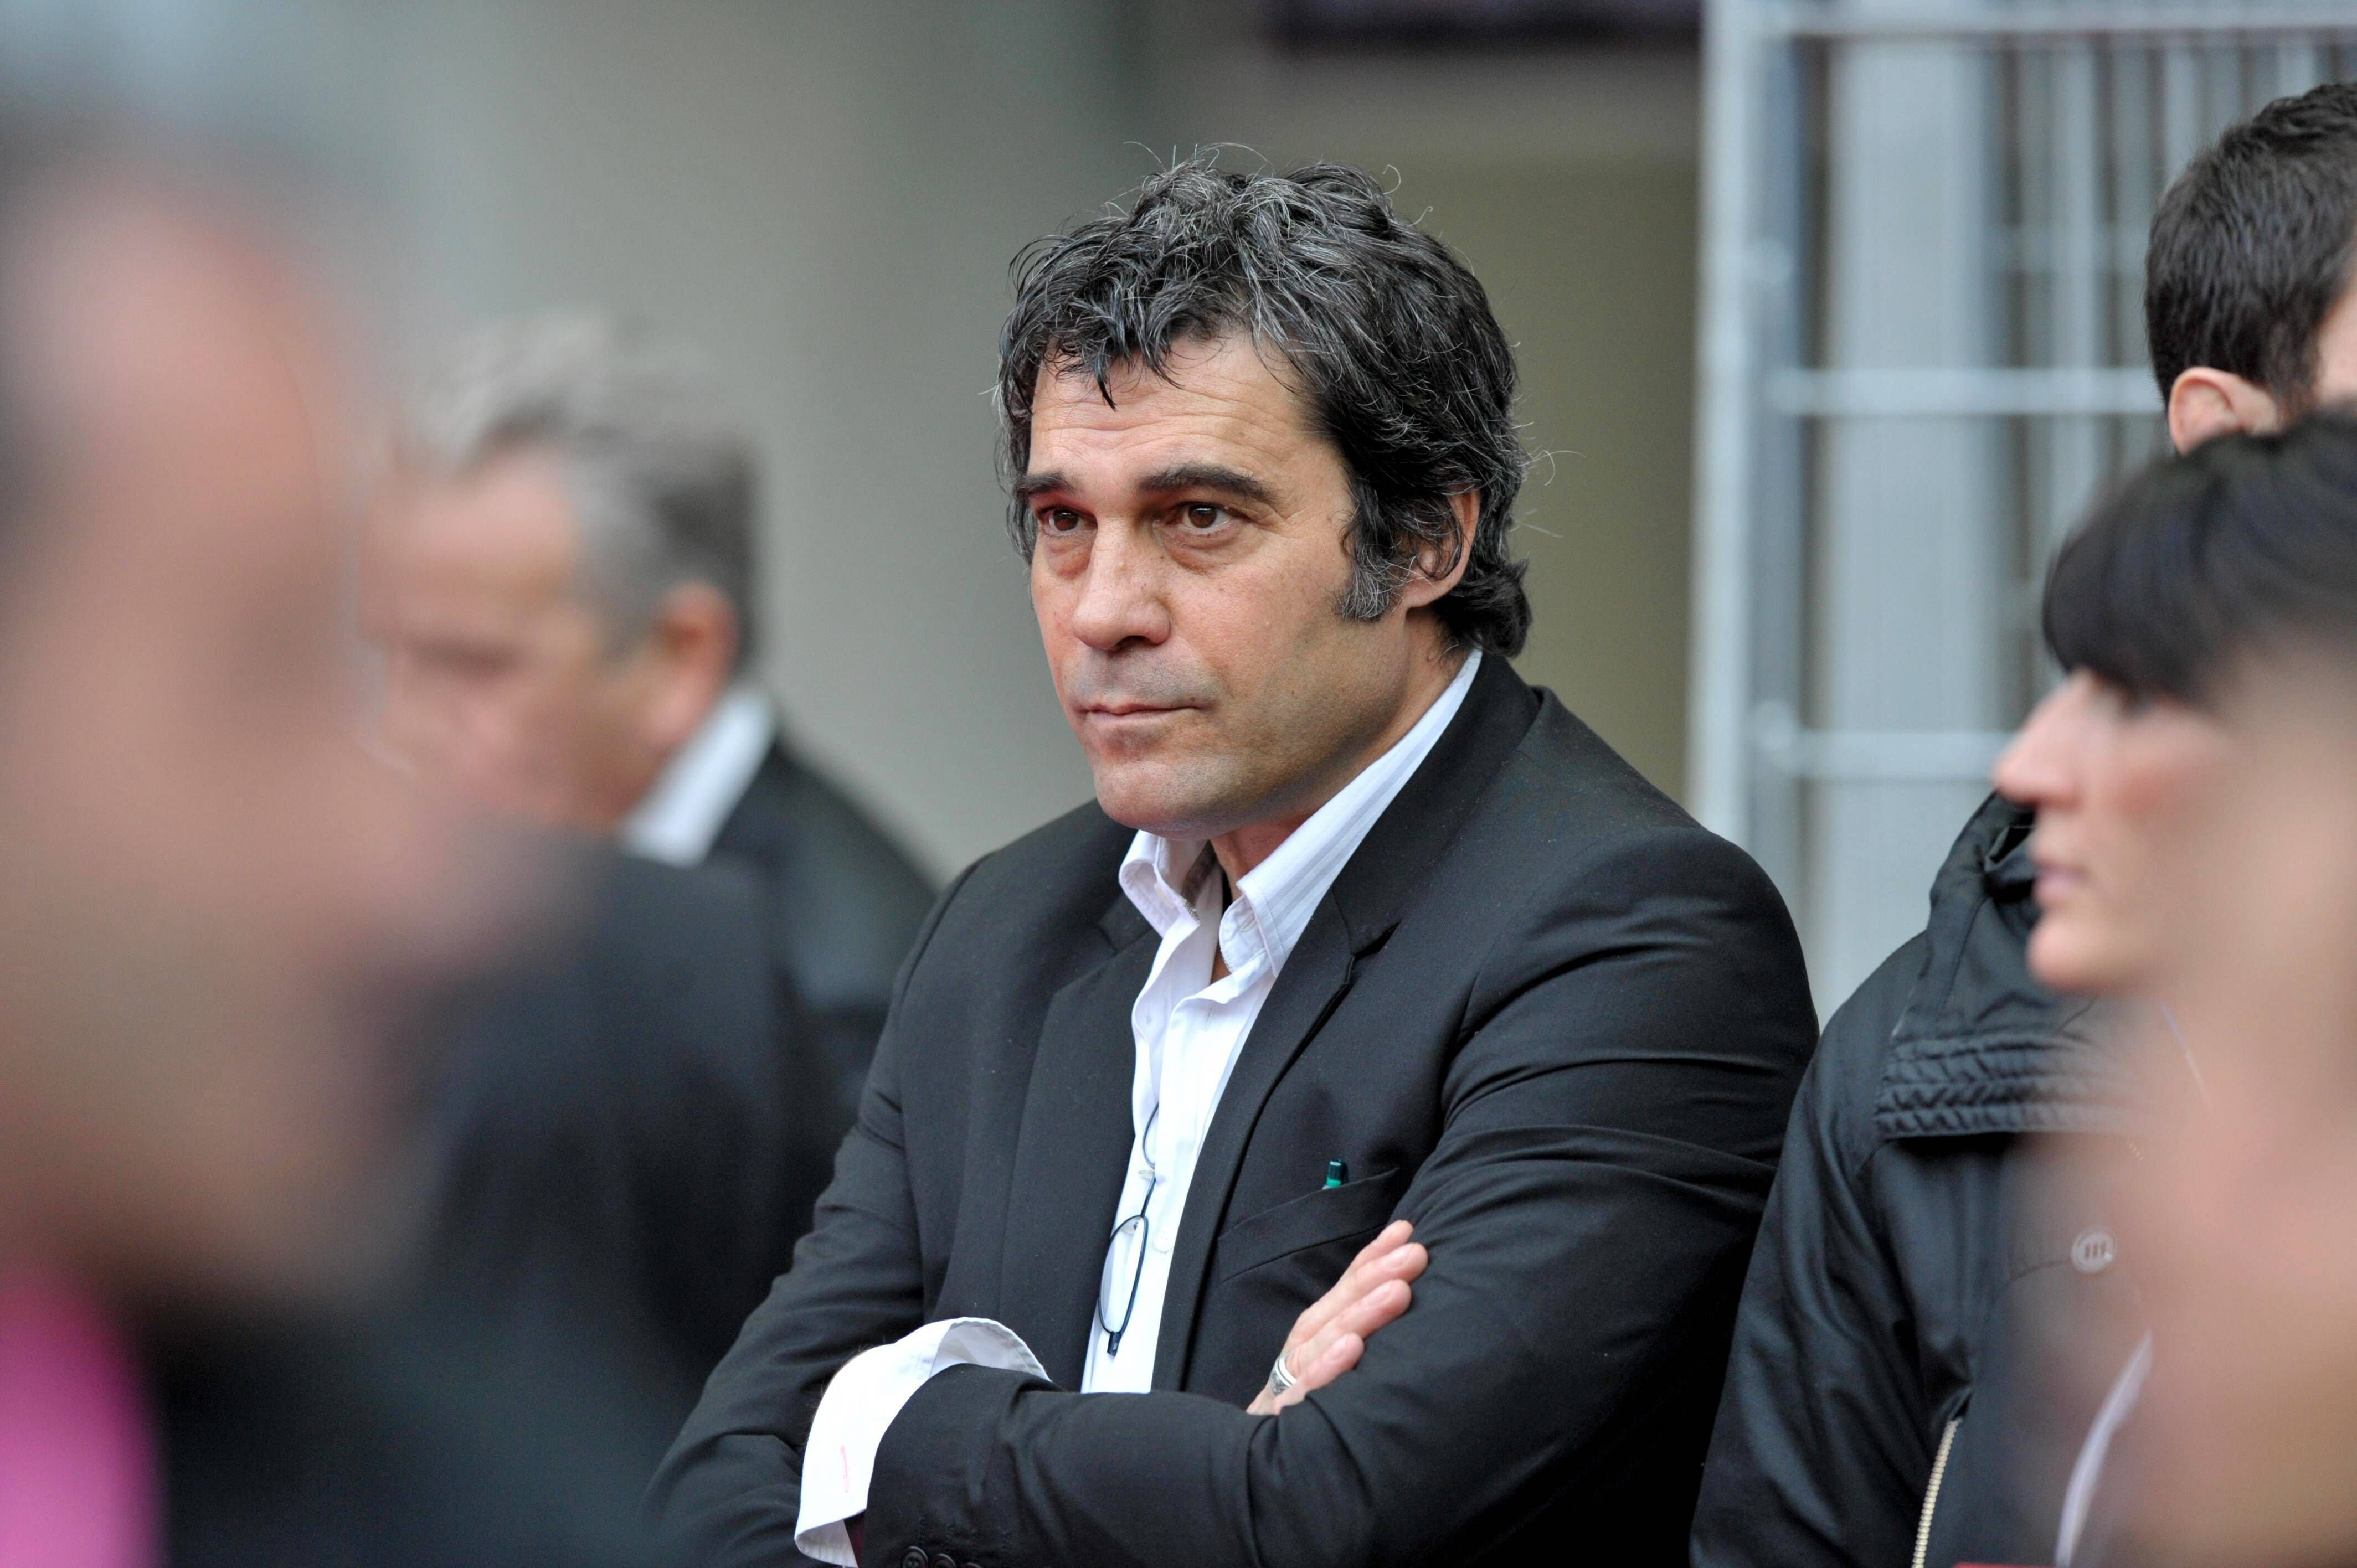 Philippe GUILLARD - 05.11.2011 - Stade Francais. | Photo : Getty Images